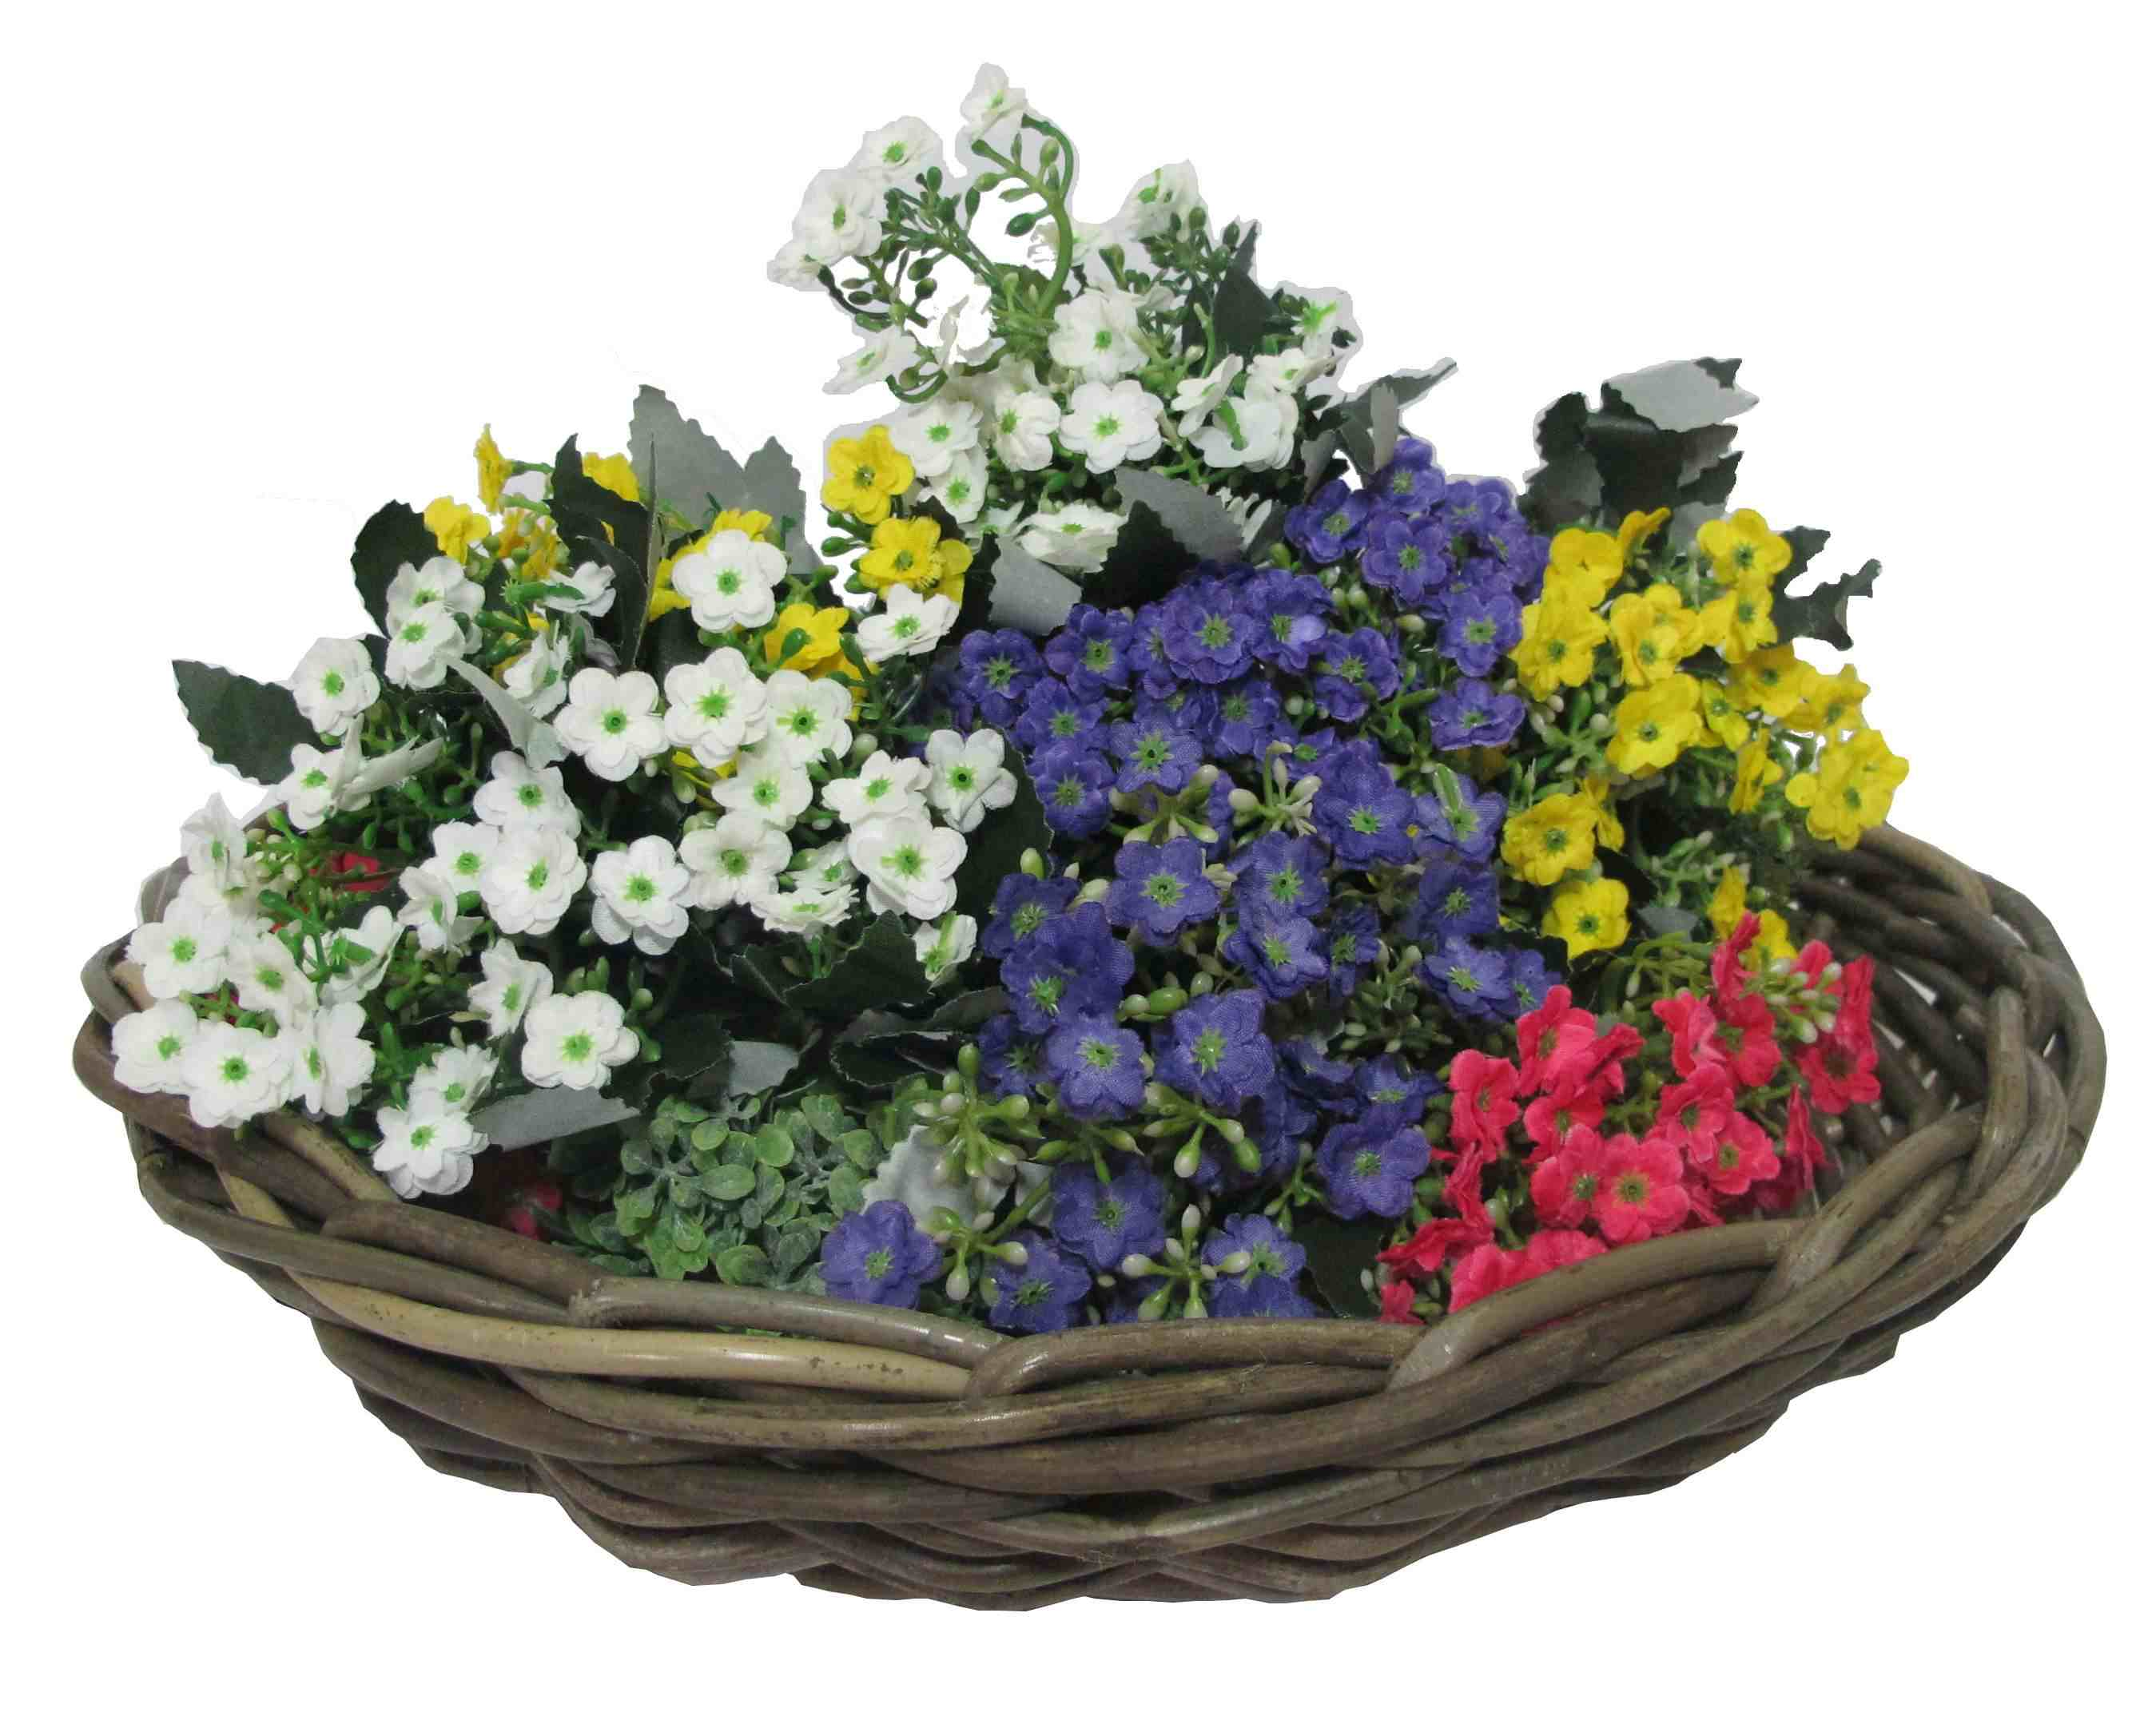 Rattan Flower Baskets : Supplier manufacturer and exporter of rattan wicker